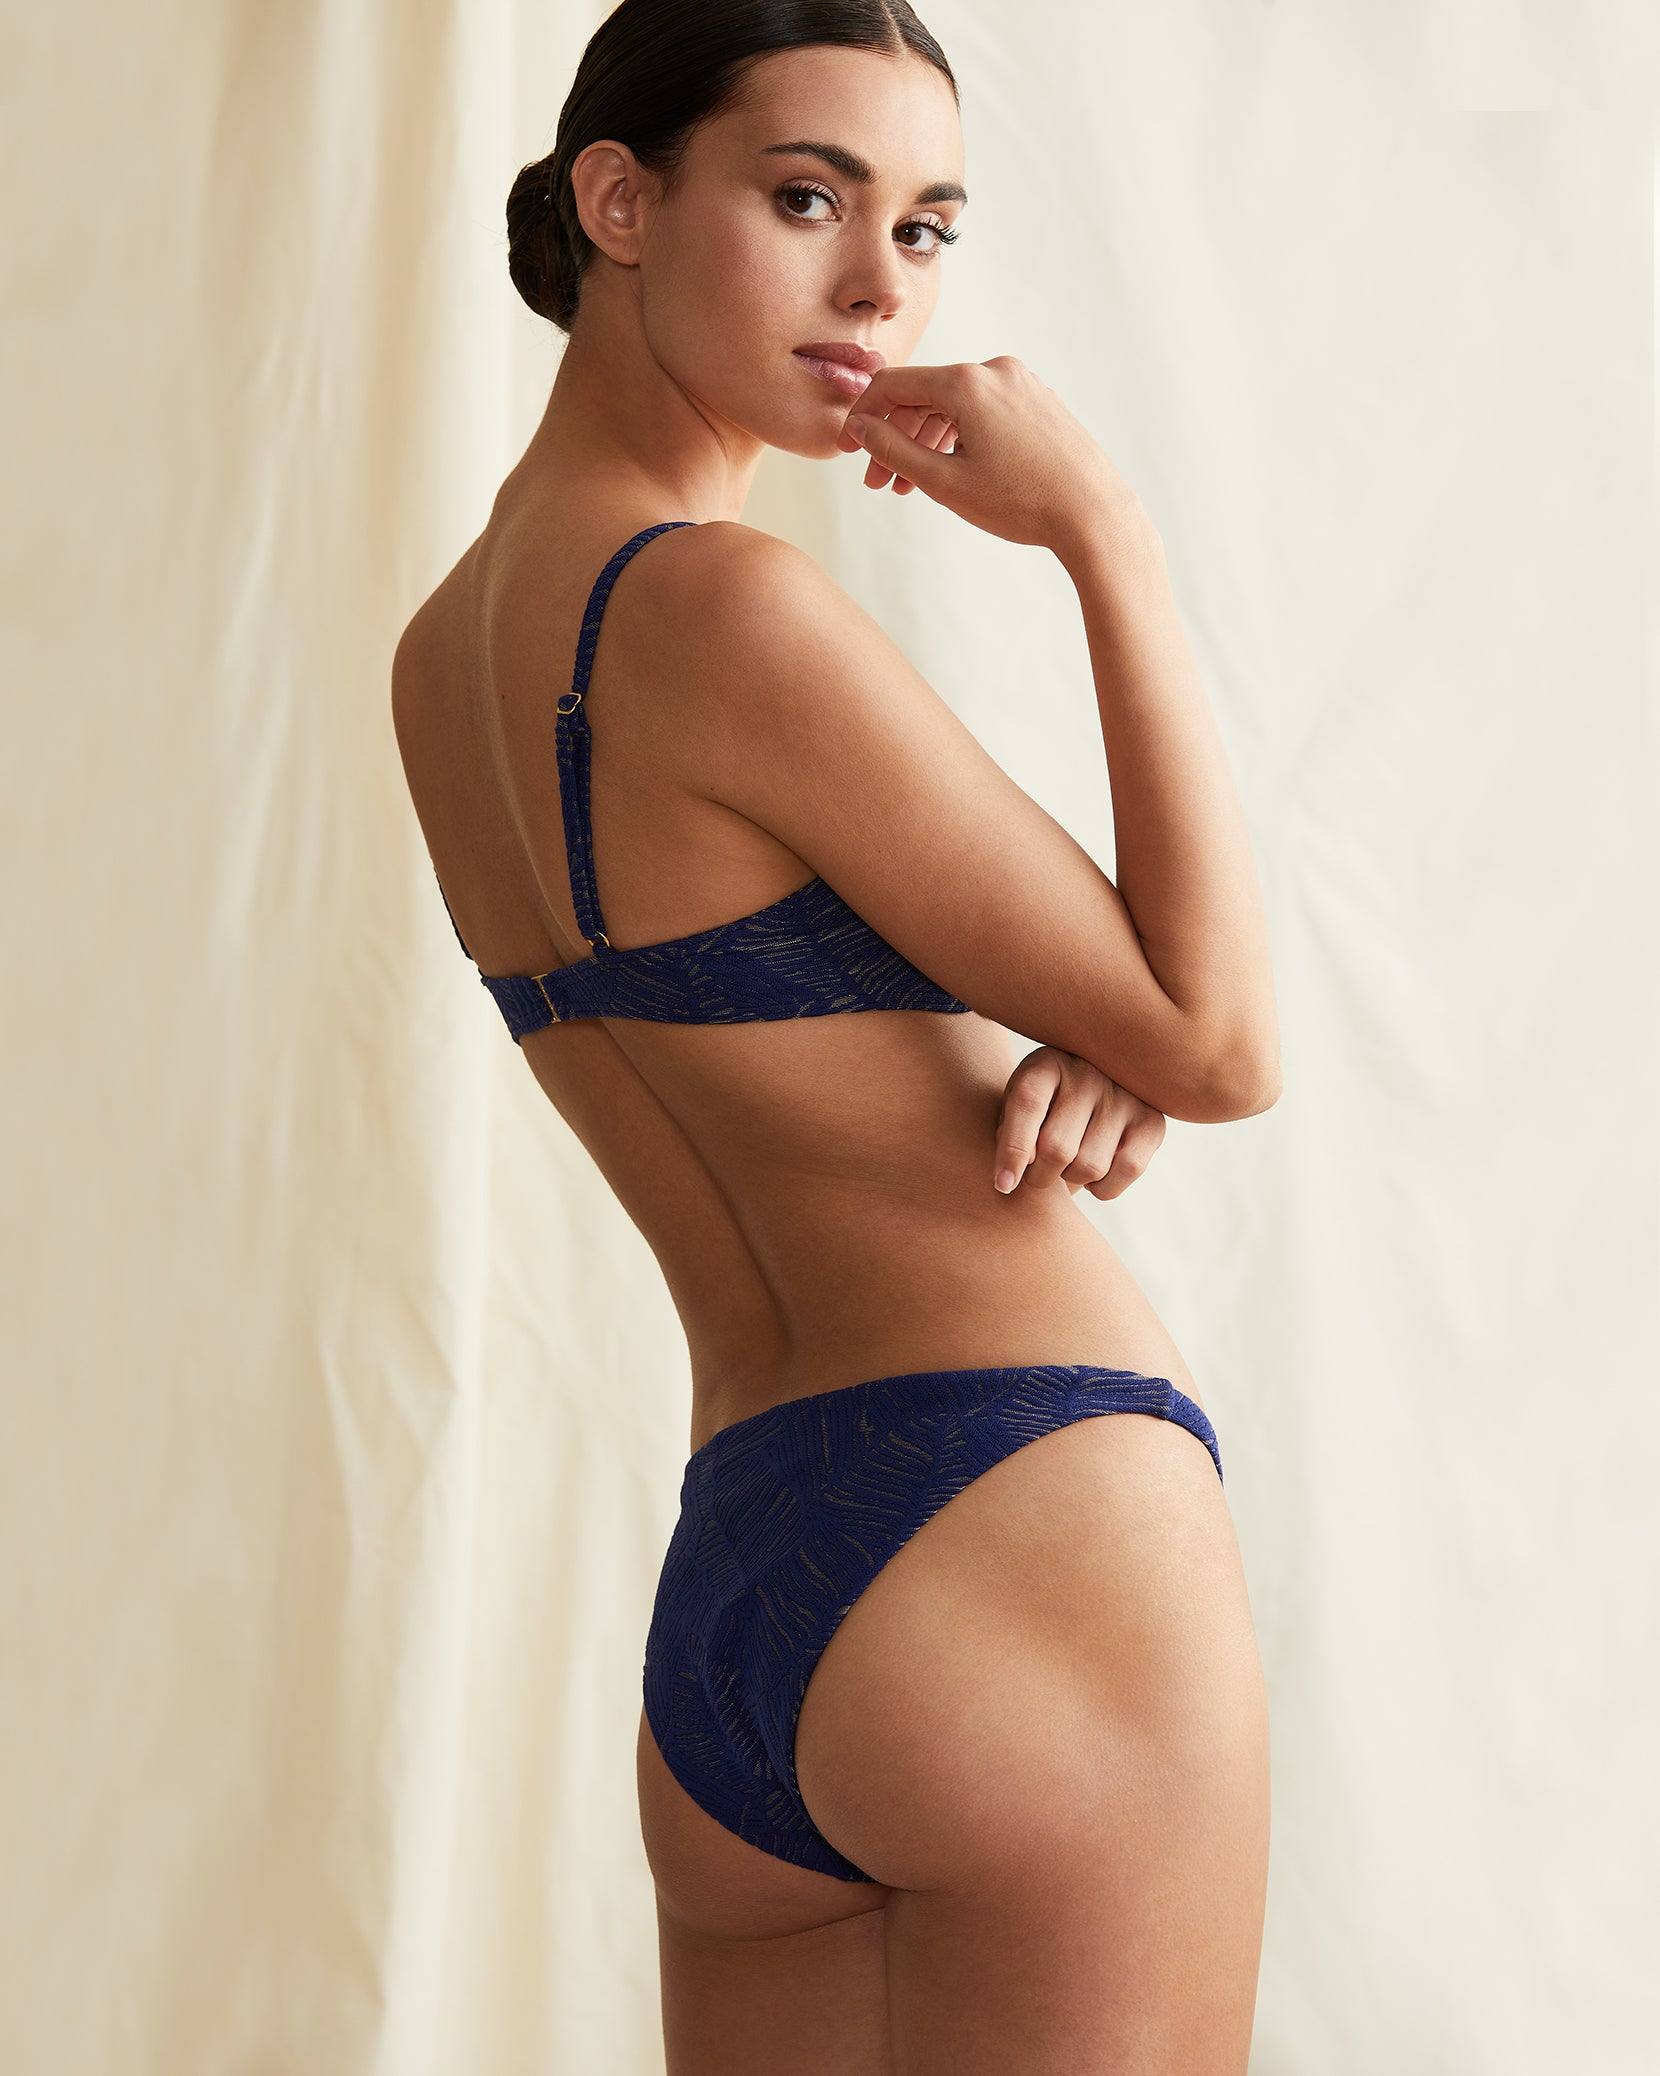 Ashley Palm Jacquard Bikini Bottom in Navy - 2 - Onia